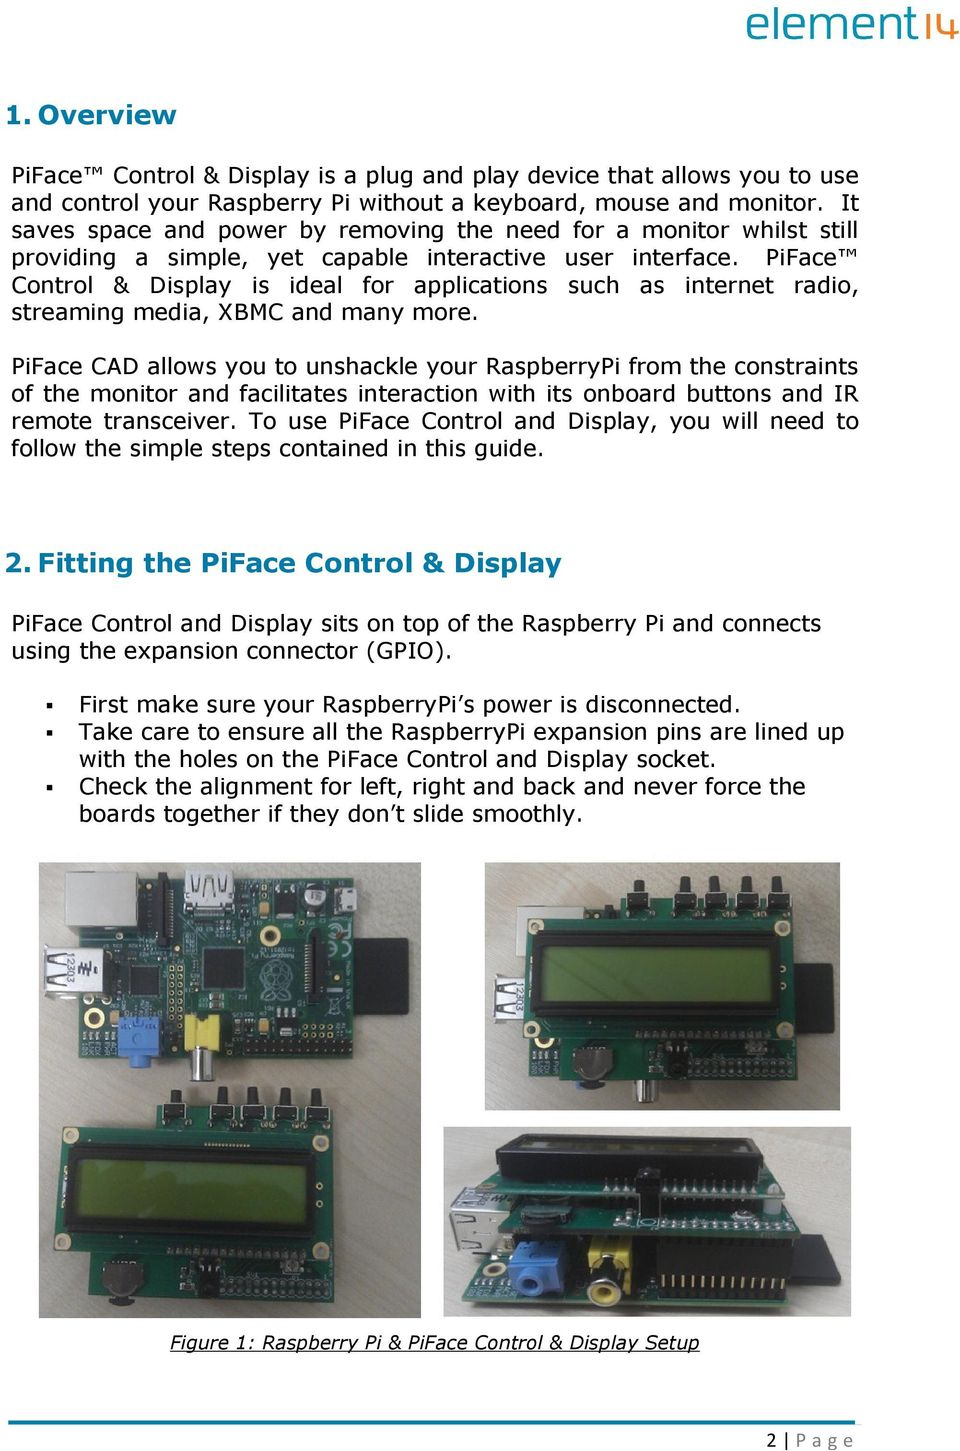 PiFace Control & Display is ideal for applications such as internet radio, streaming media, XBMC and many more.